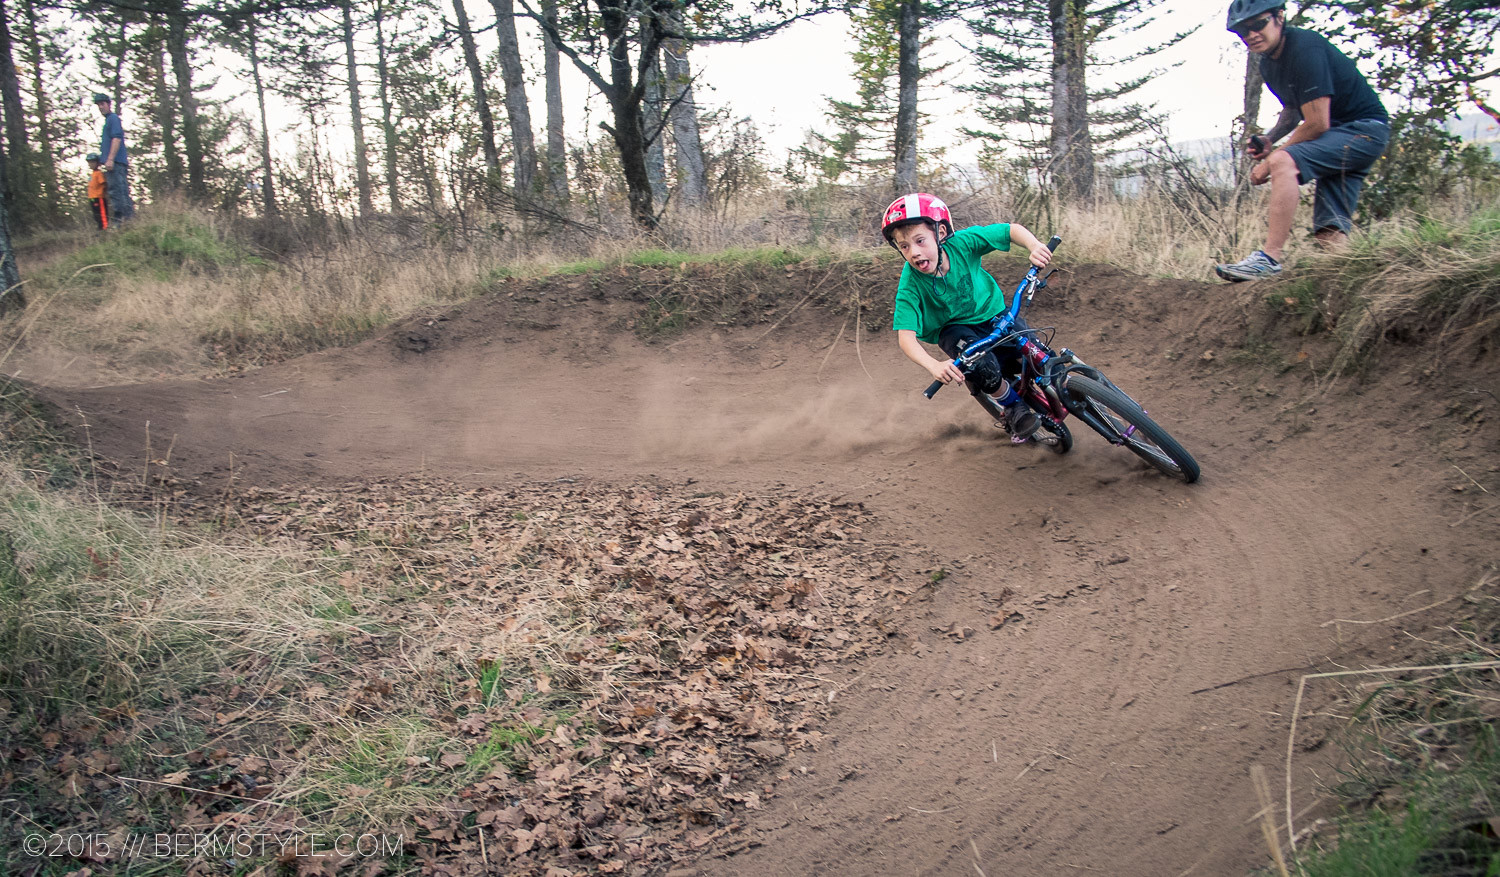 Take a Kid Mountain Biking Day – EasyCLIMB Trail, Cascade Locks